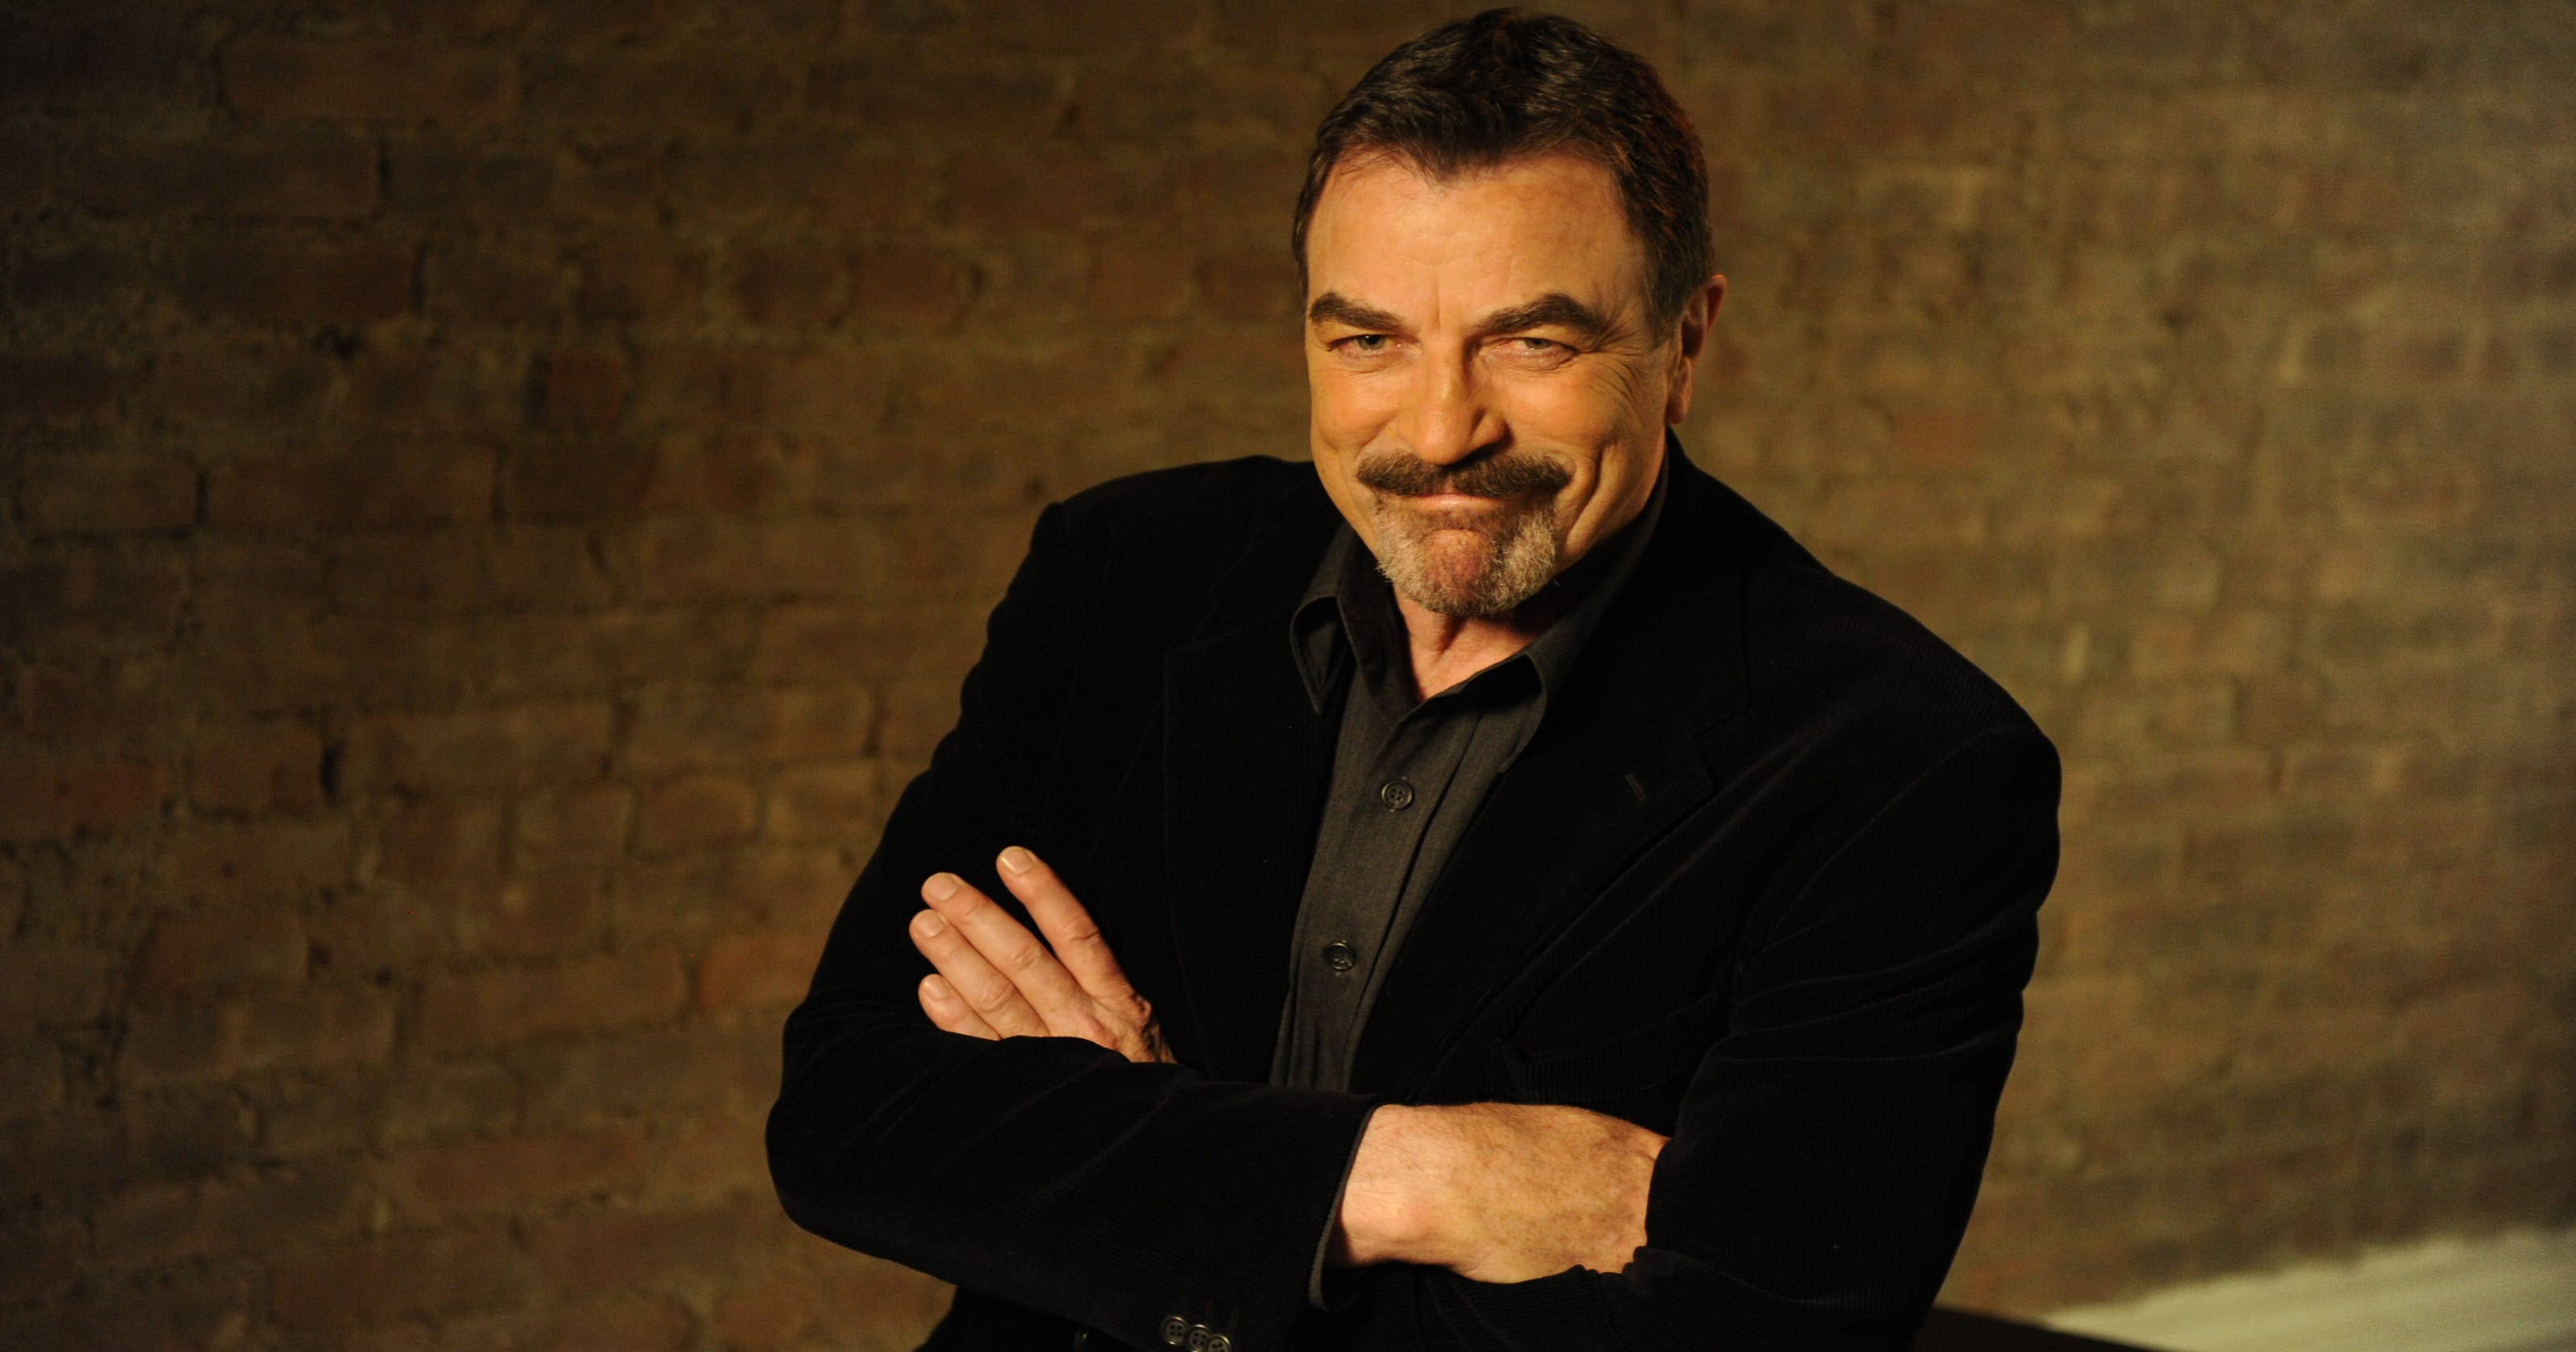 Tom Selleck Stepped Down From The Nra Board His Publicist Confirms